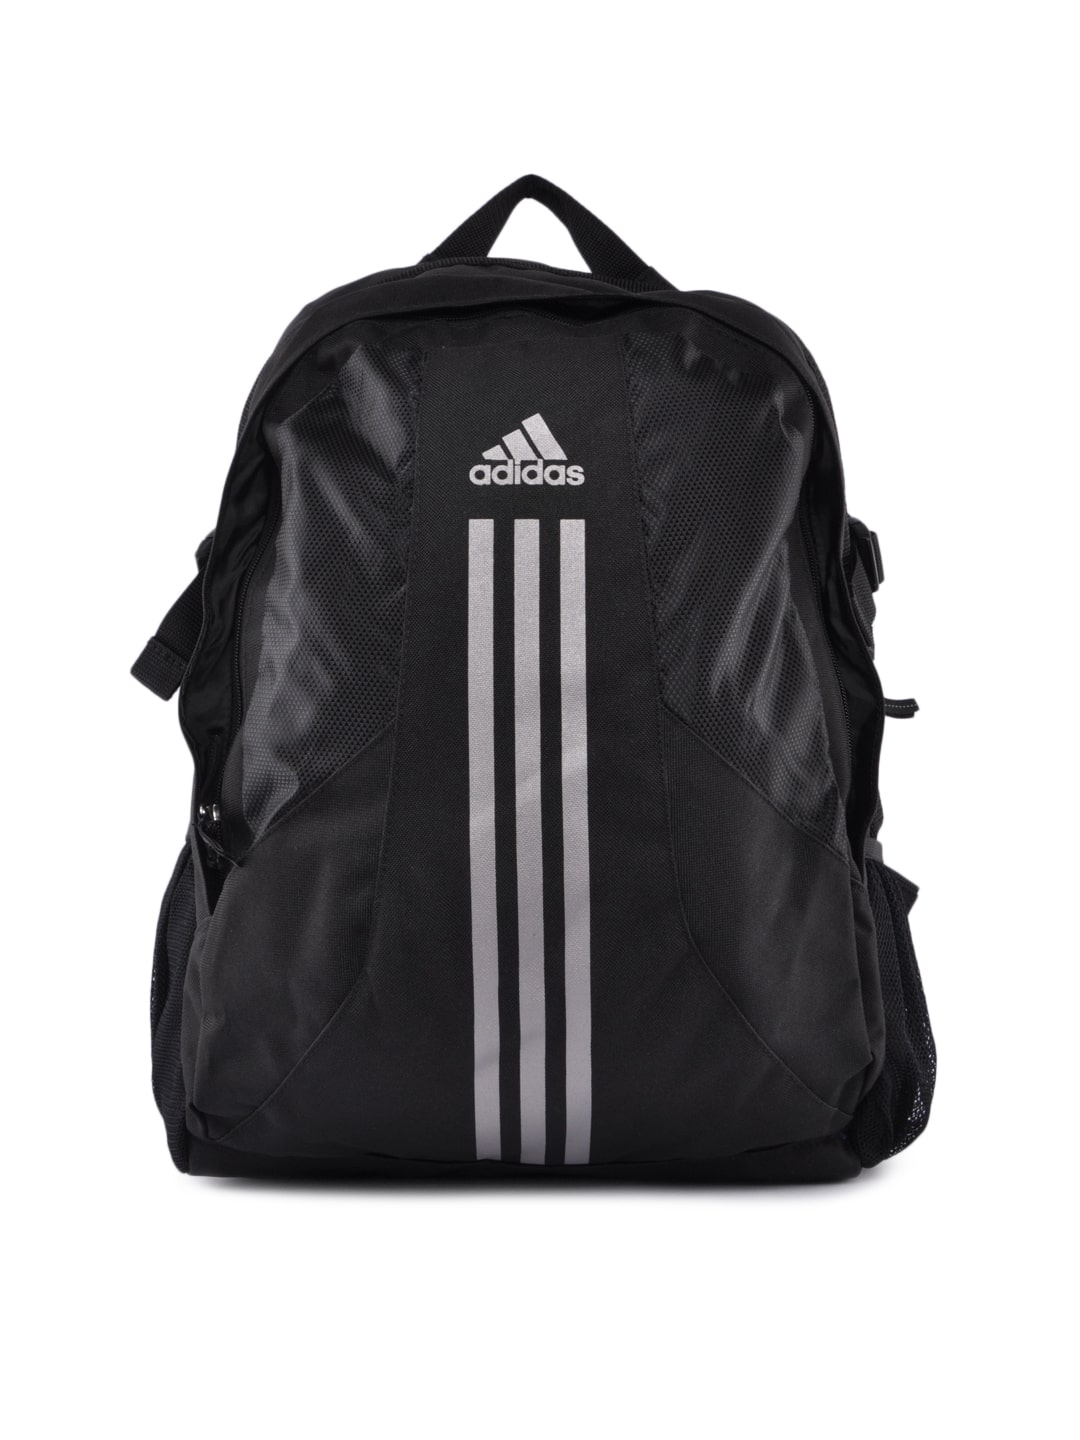 195ced442a Adidas e43700 Unisex Black Casual Backpack - Best Price in India ...